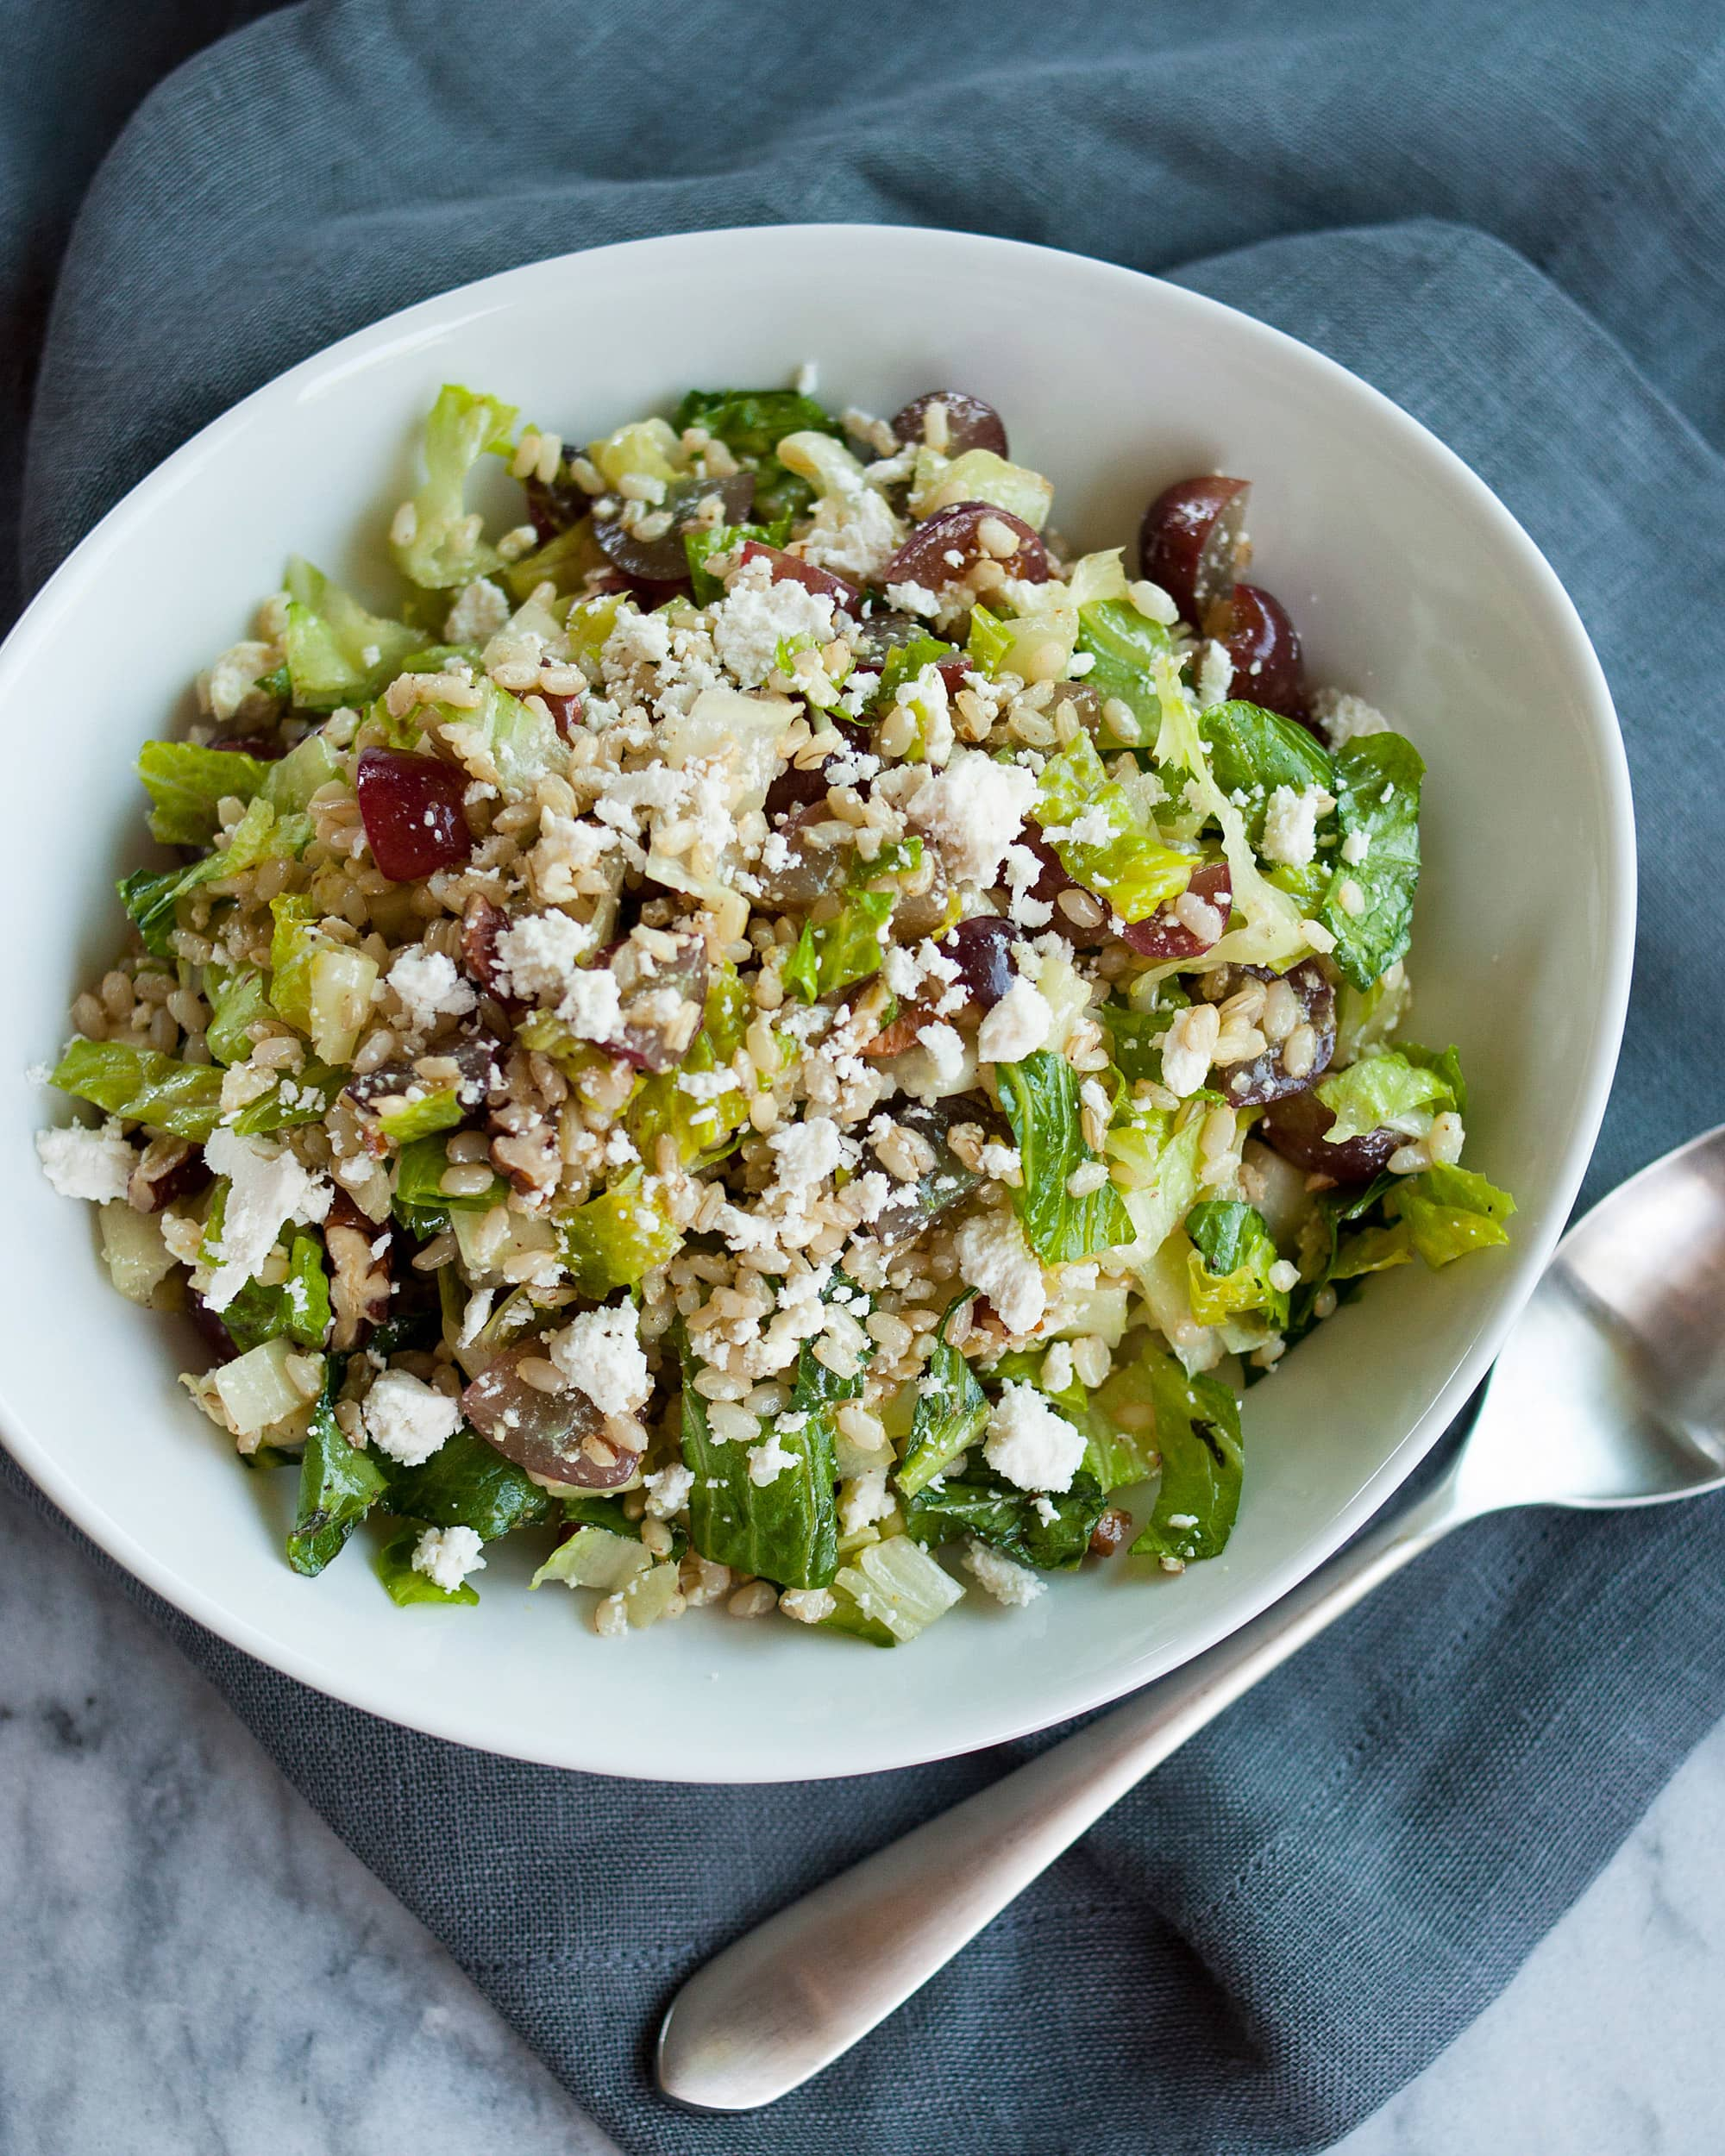 Recipe: Chopped Brown Rice Salad With Grapes And Pecans